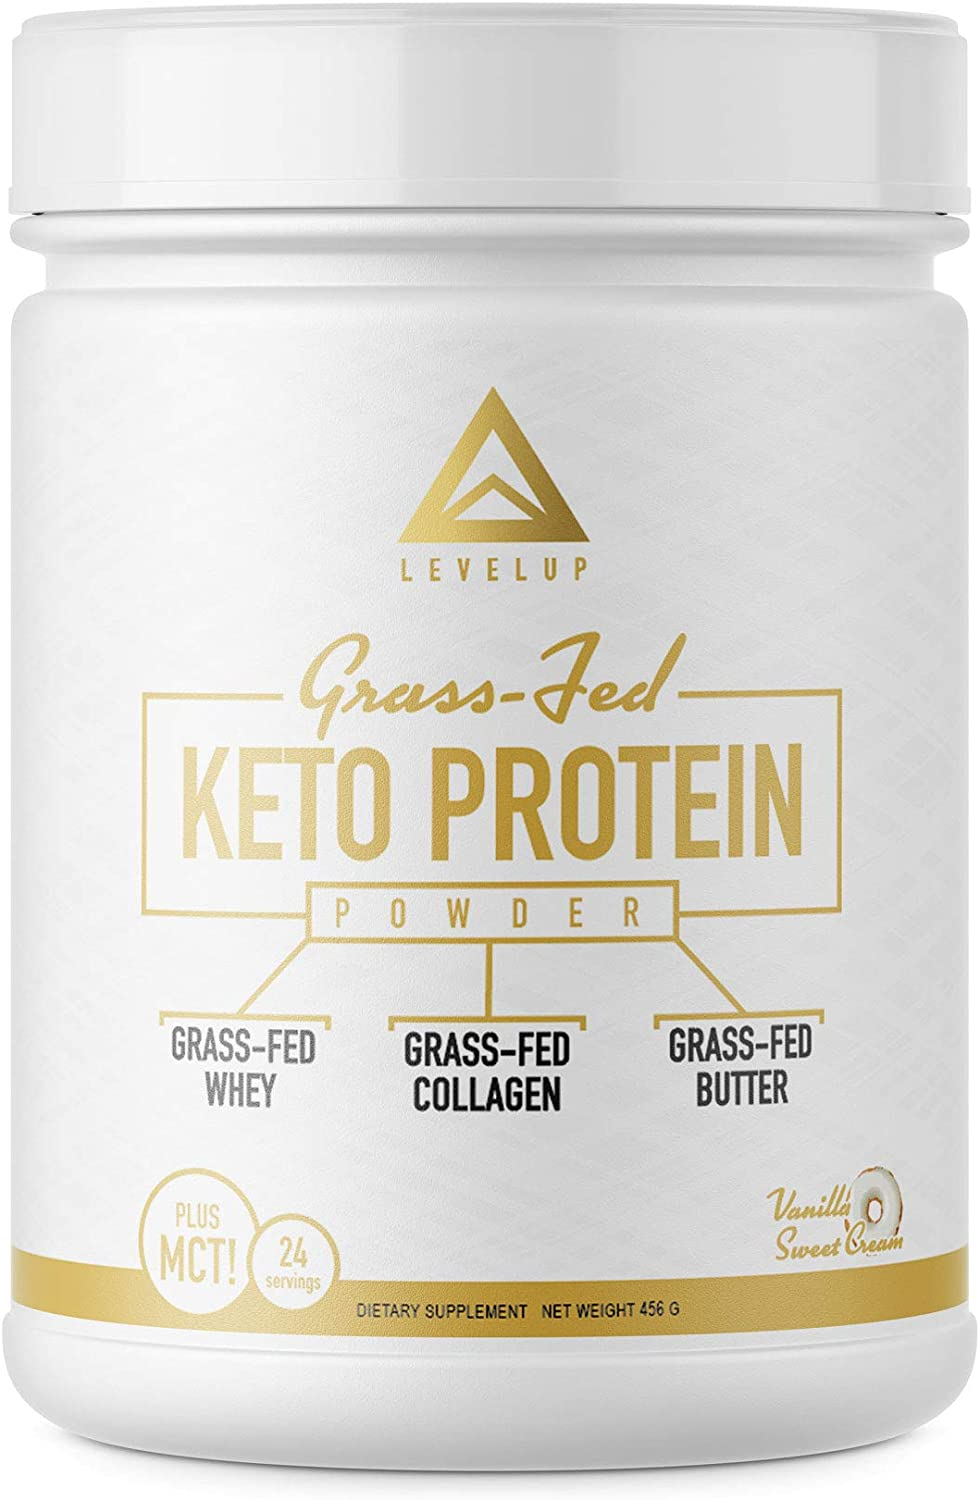 Grass-fed Keto Protein Powder Collagen Peptides Pure C8 MCT Oil Irish Butter Whey Protein Isolate Best Ketogenic Protein Shake Supplement by LevelUp Vanilla Sweet Cream